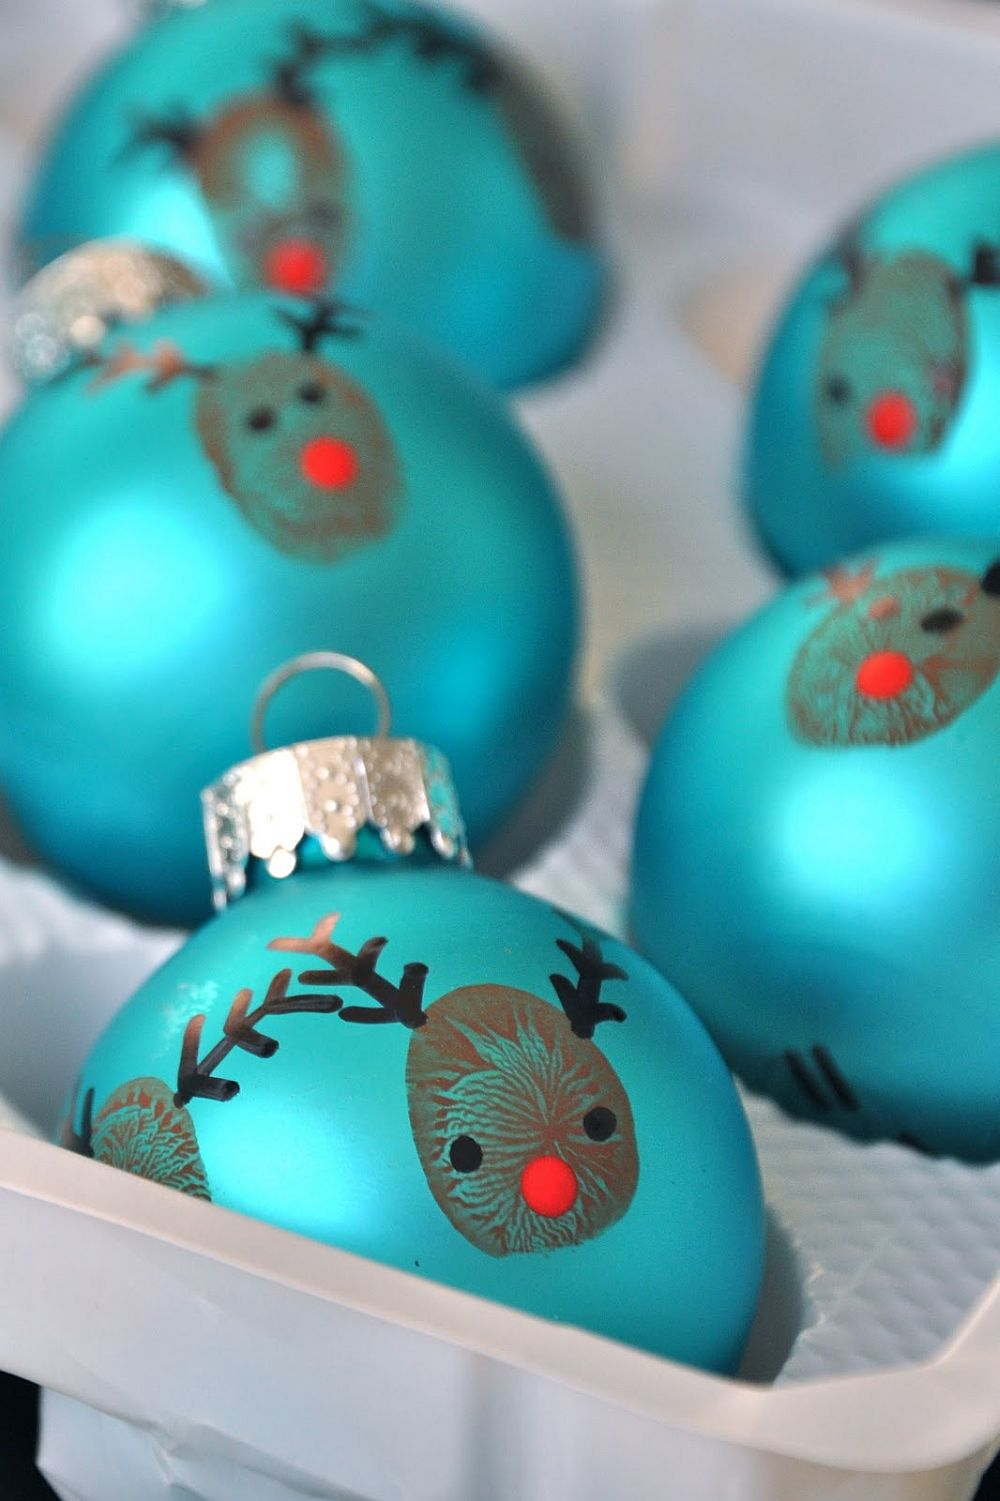 20-minute Christmas ornament crafting idea with reindeer motifs